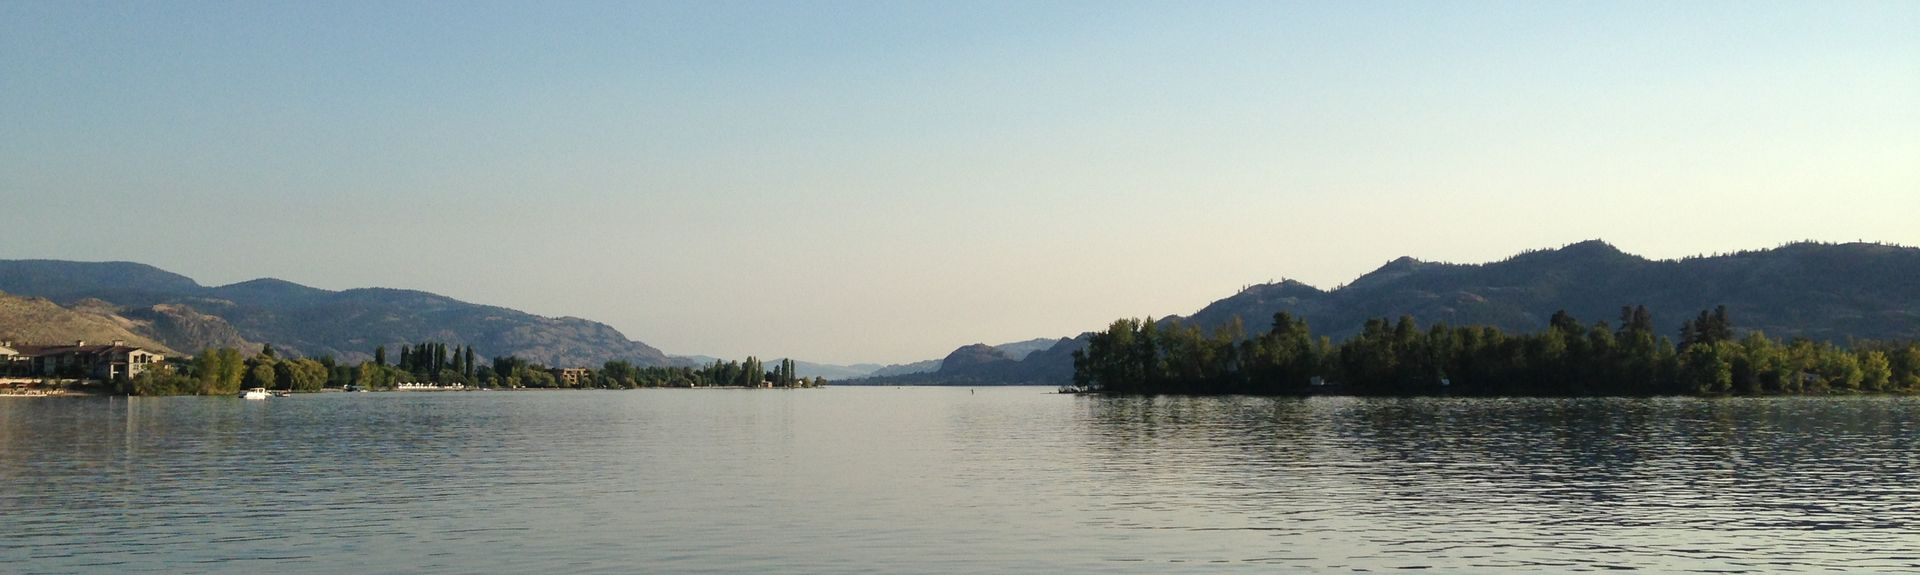 Village On The Lake (Osoyoos, Columbia Britannica, Canada)